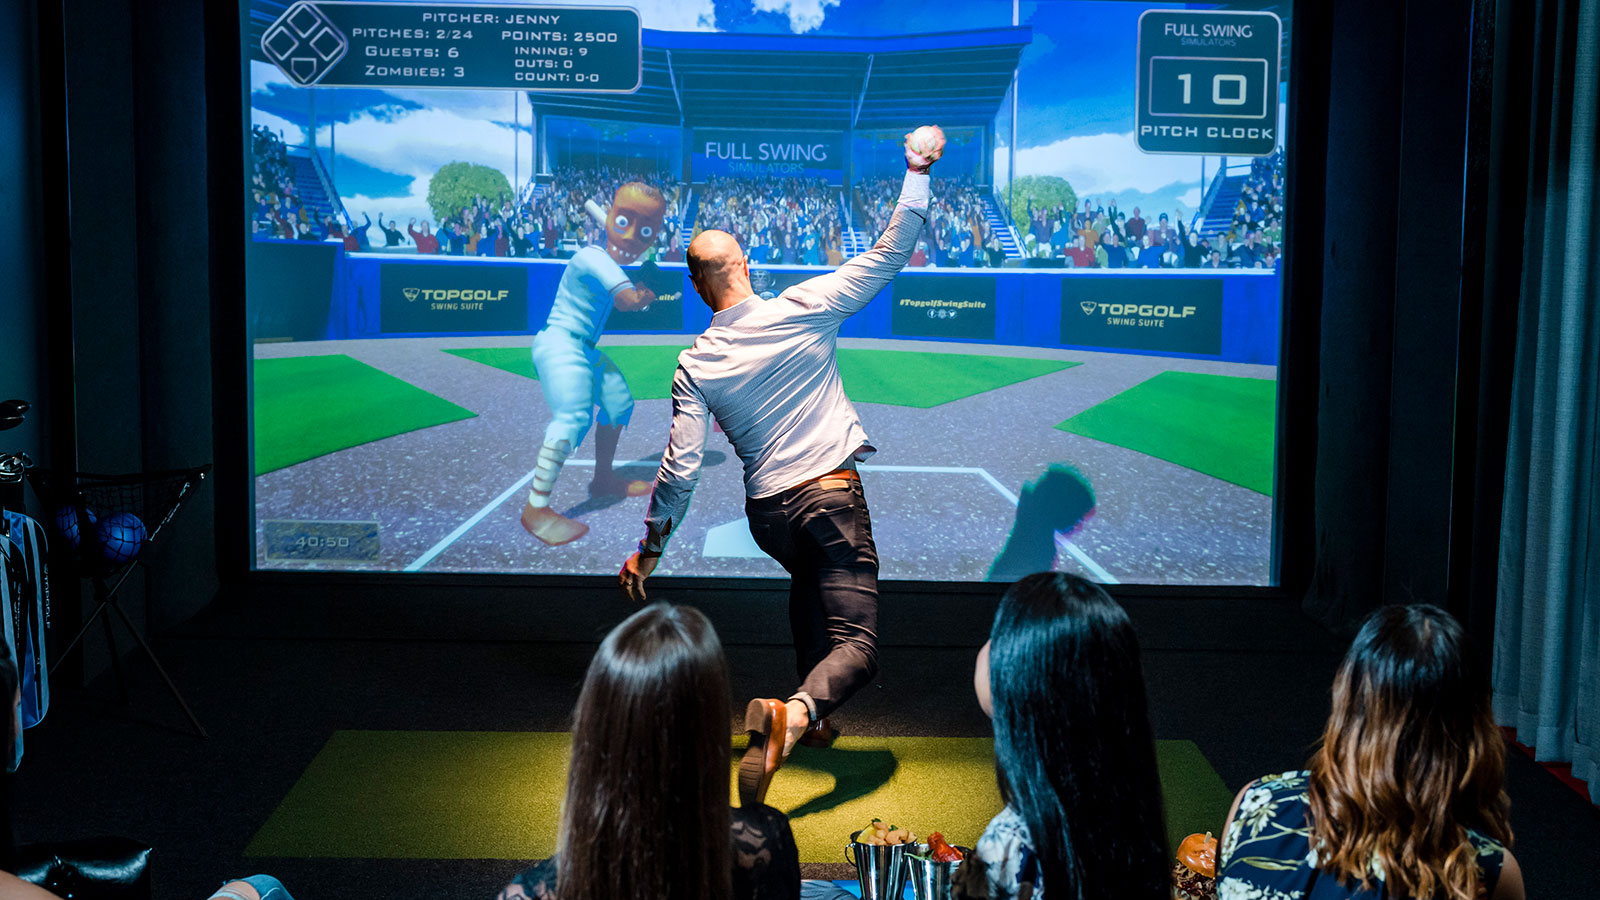 Group of adults watch man pitch a baseball in a virtual baseball game with TOPGOLF SWING SUITE